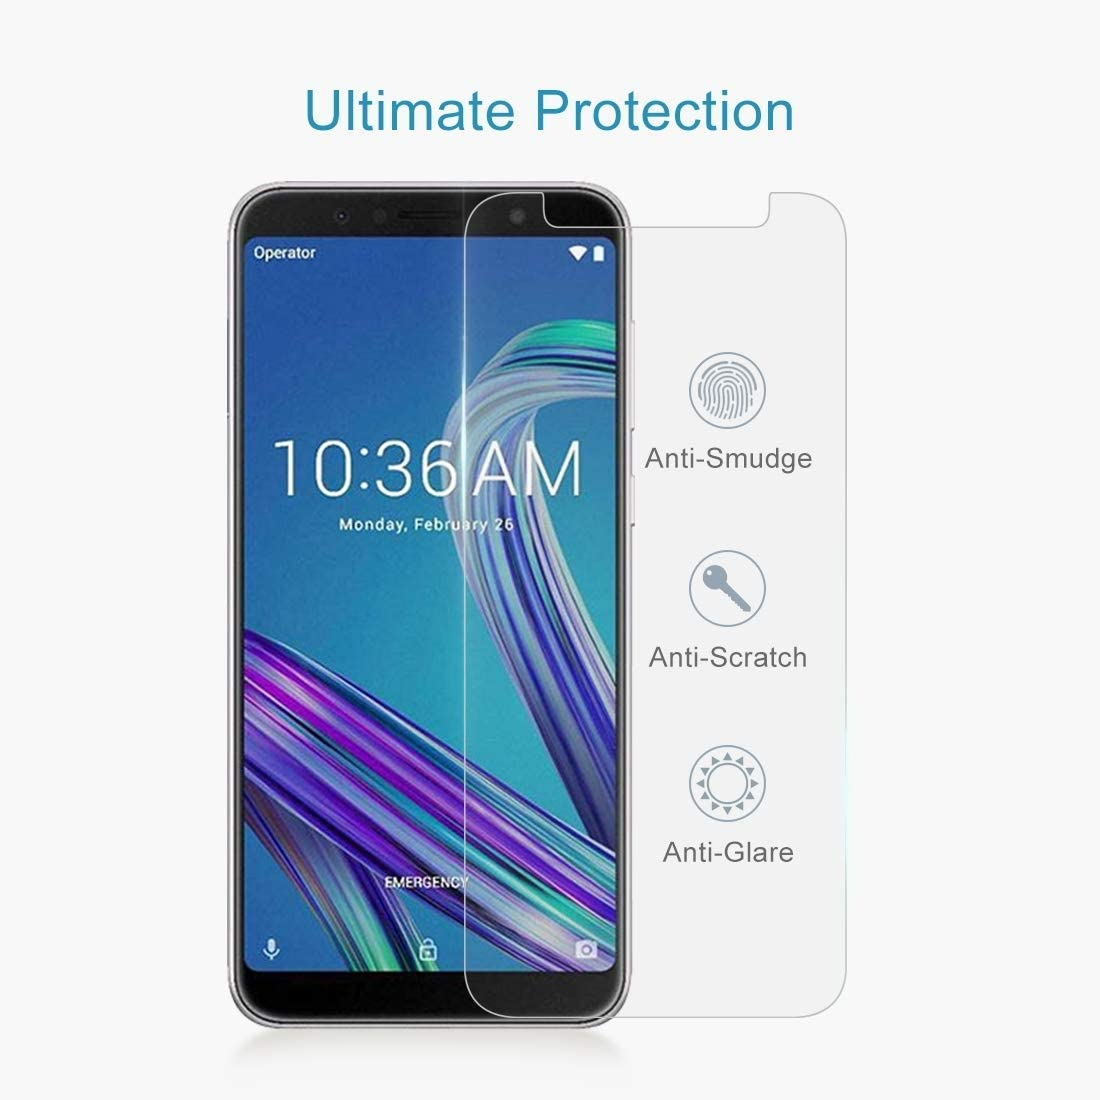 ZB601KL JIANGNIUS Screen Protectors 100 PCS 0.26mm 9H 2.5D Tempered Glass Film for Asus ZenFone Max Pro M1